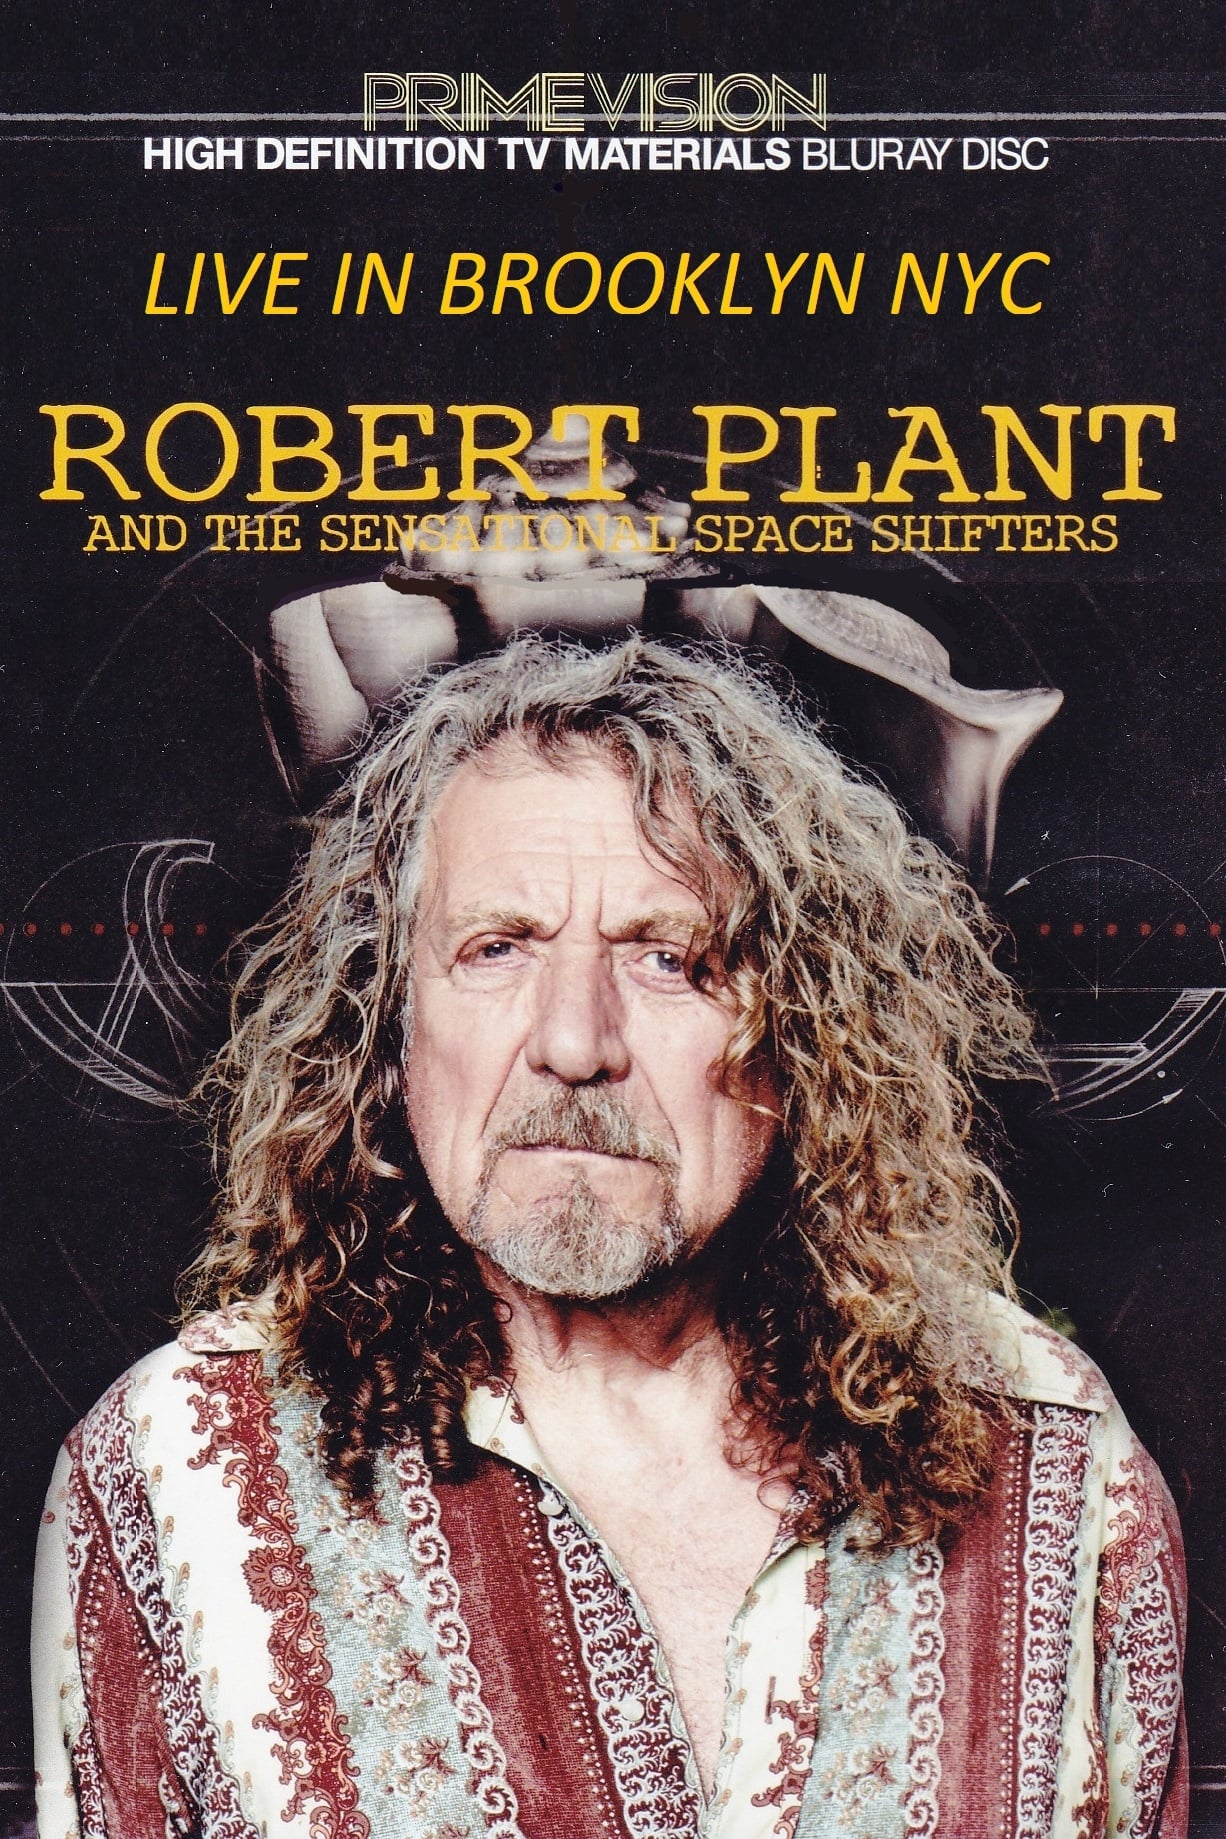 Robert Plant & The Sensational Space Shifters Live In Brooklyn (2014)